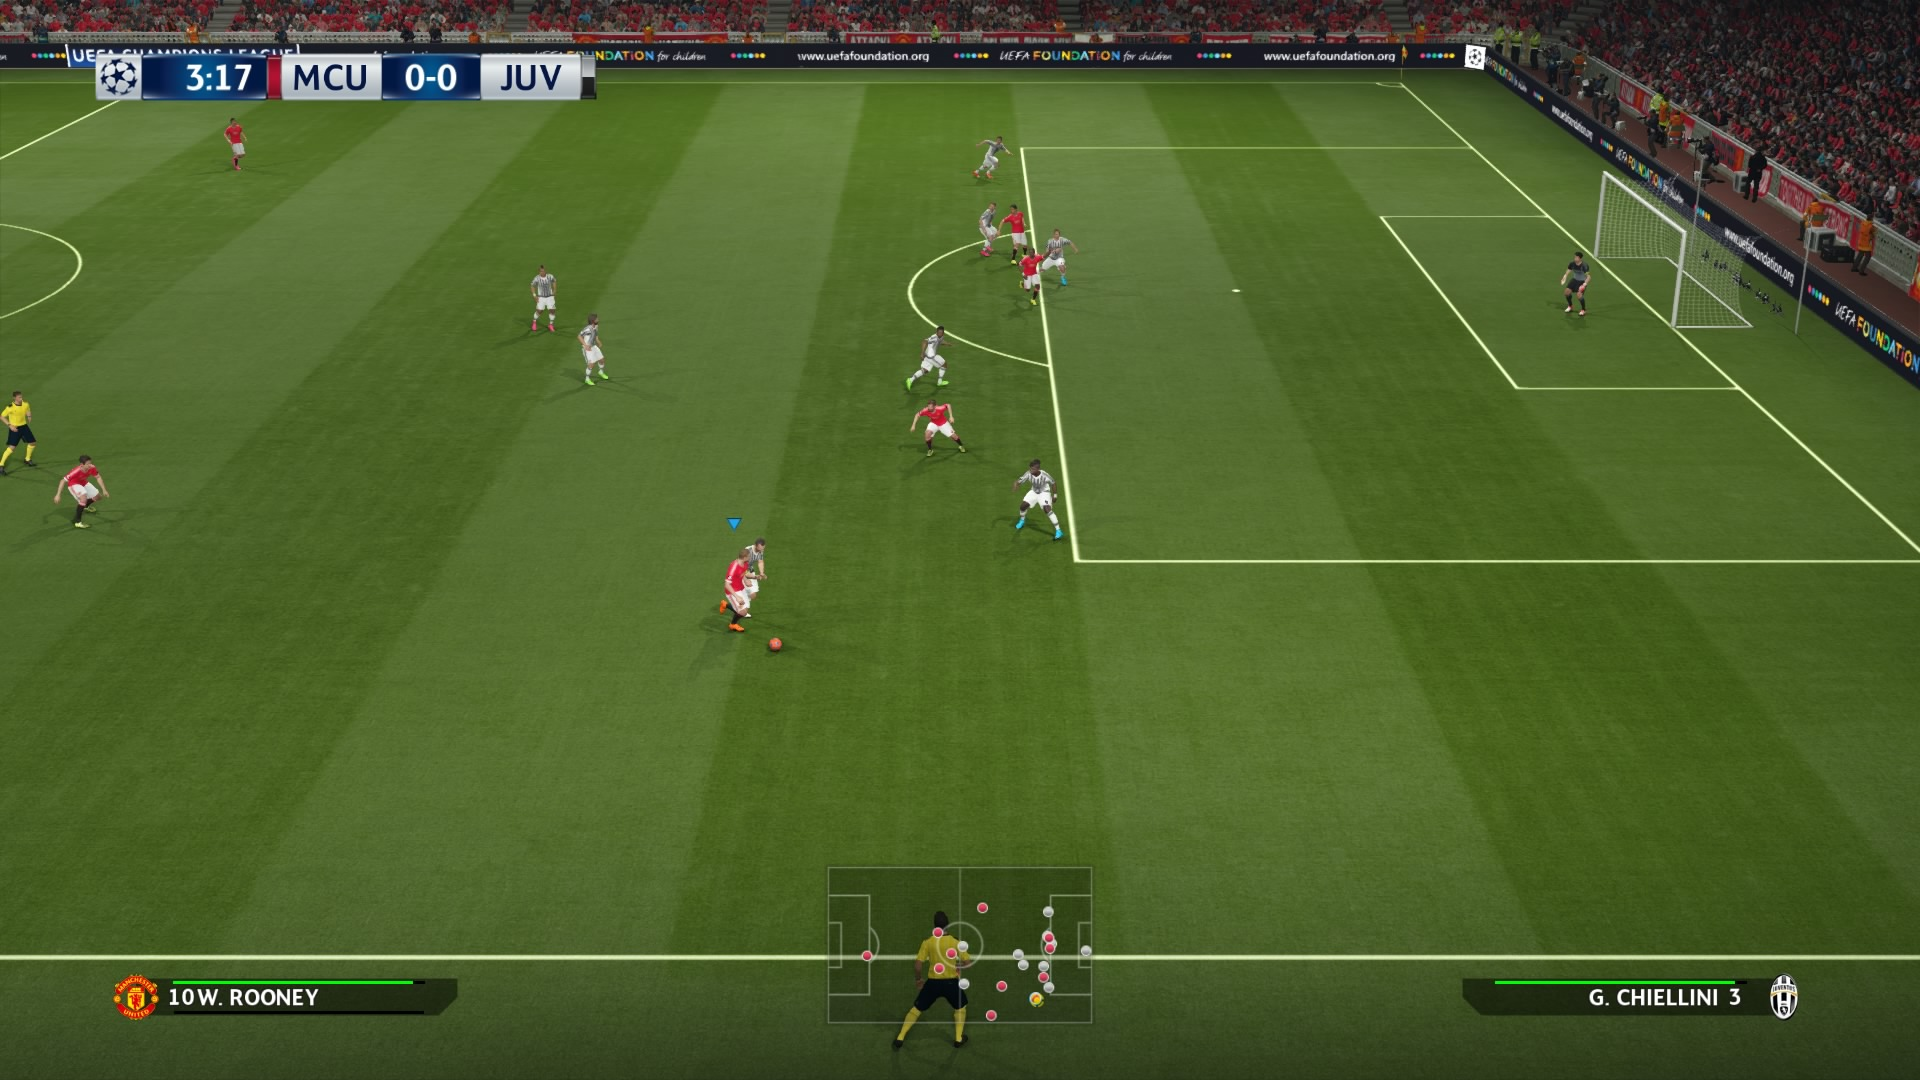 Free Download Pes 2016 Full Crack on memory hard drive